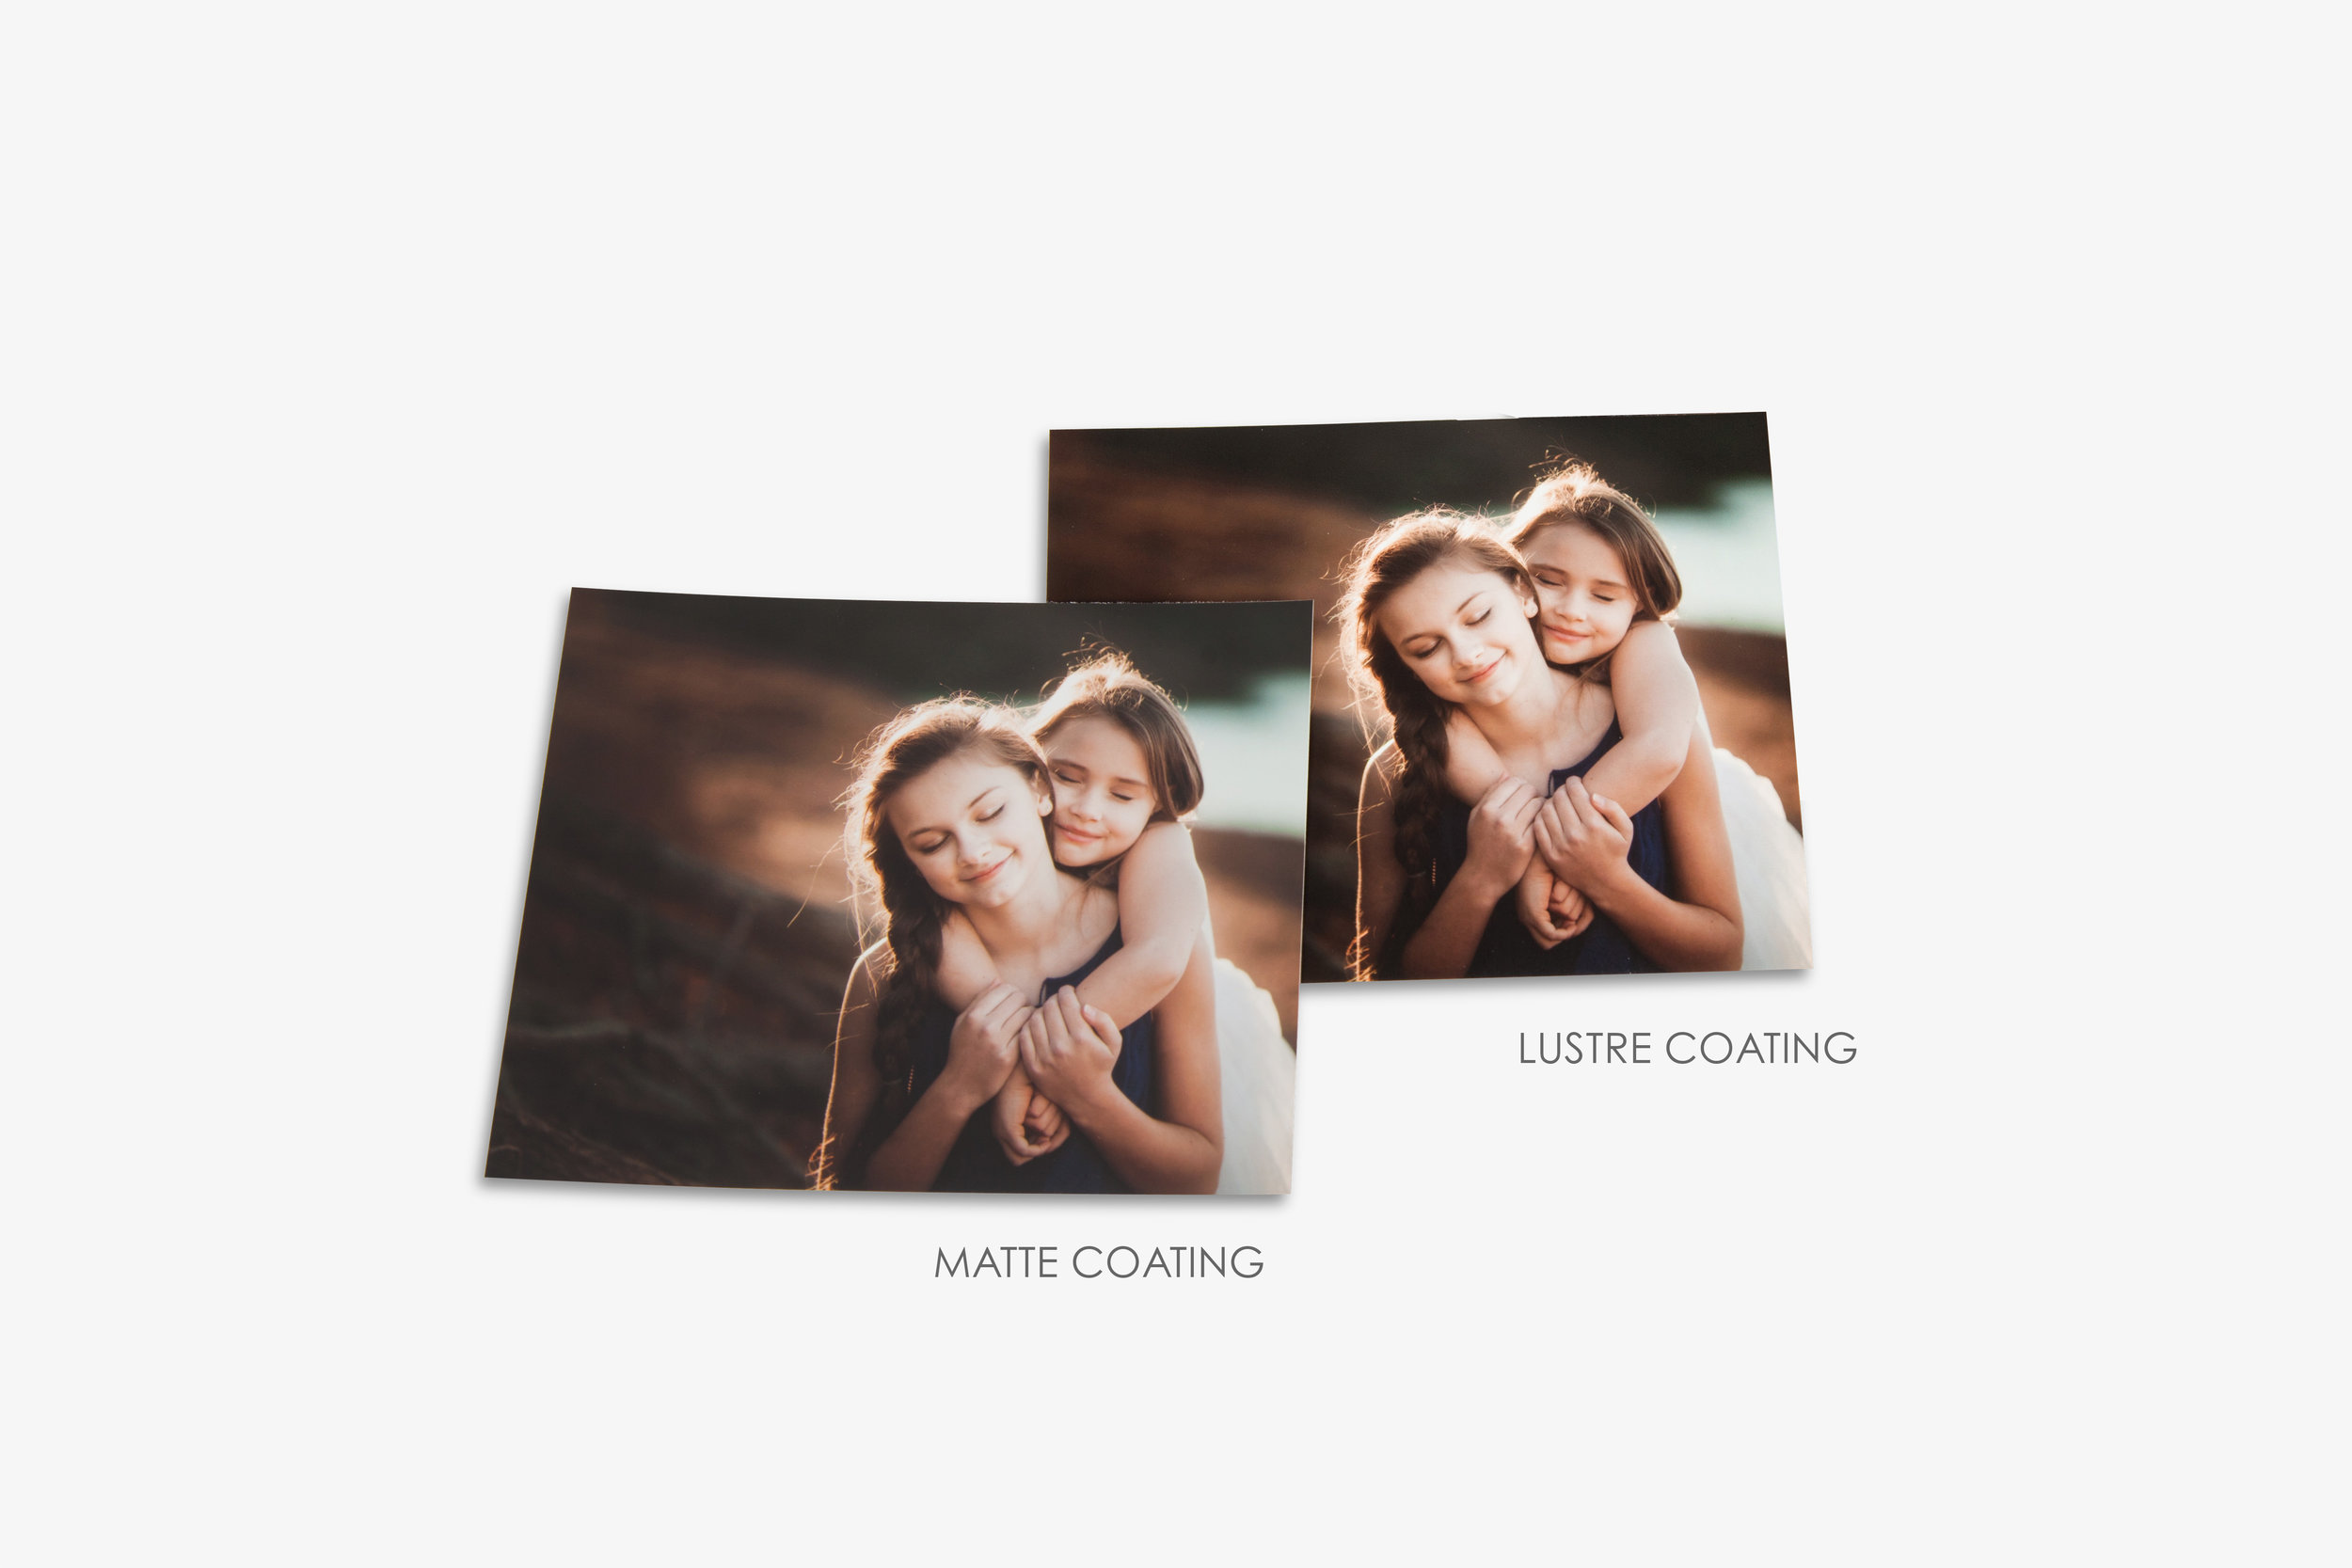 Photo Print Coating, Matte Coating, Lustre Coating